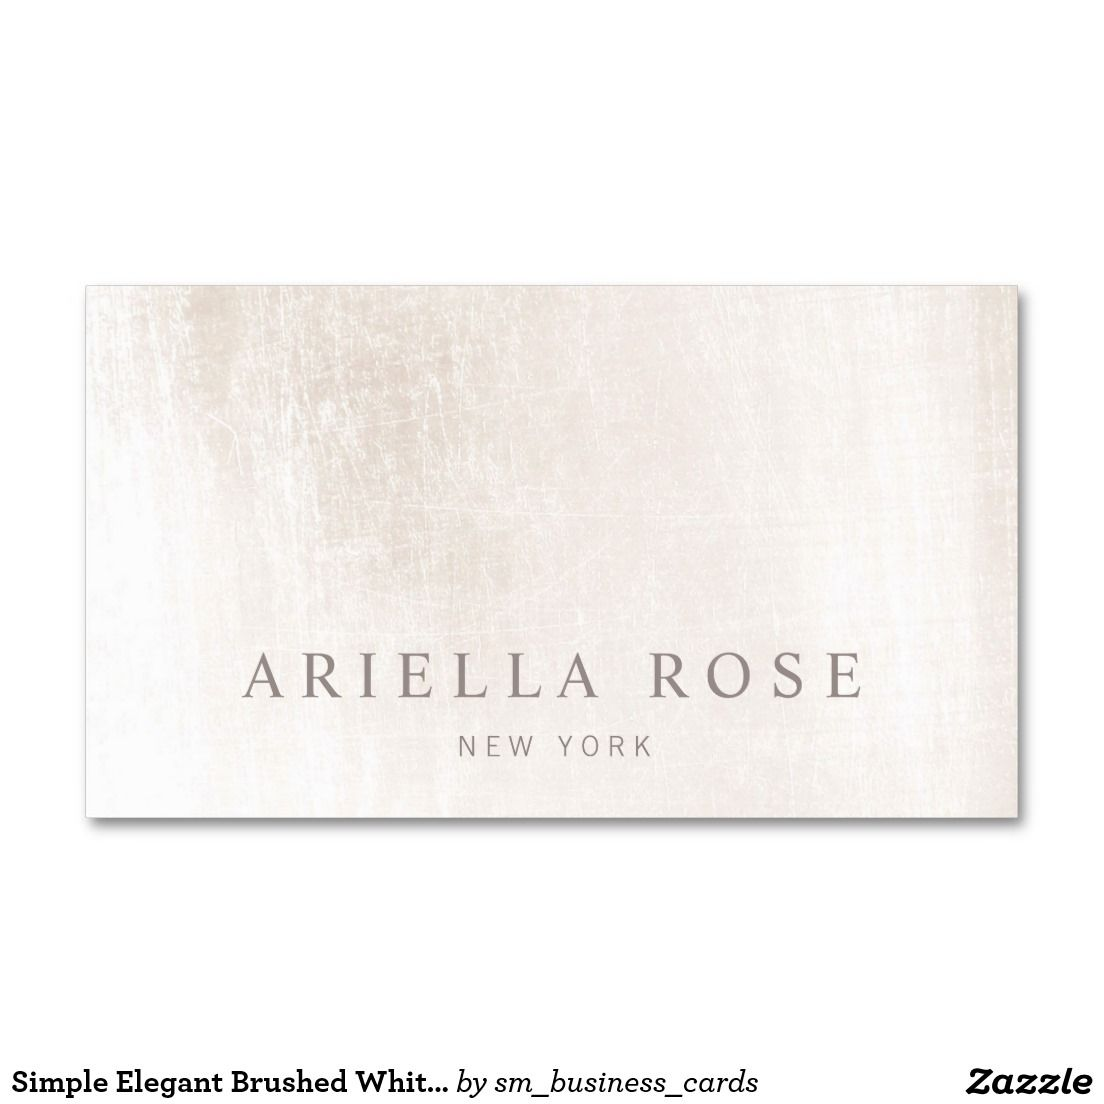 Simple Elegant Brushed White Marble Professional Business Card Zazzle Com Makeup Artist Business Cards Templates Esthetician Business Cards Business Card Maker